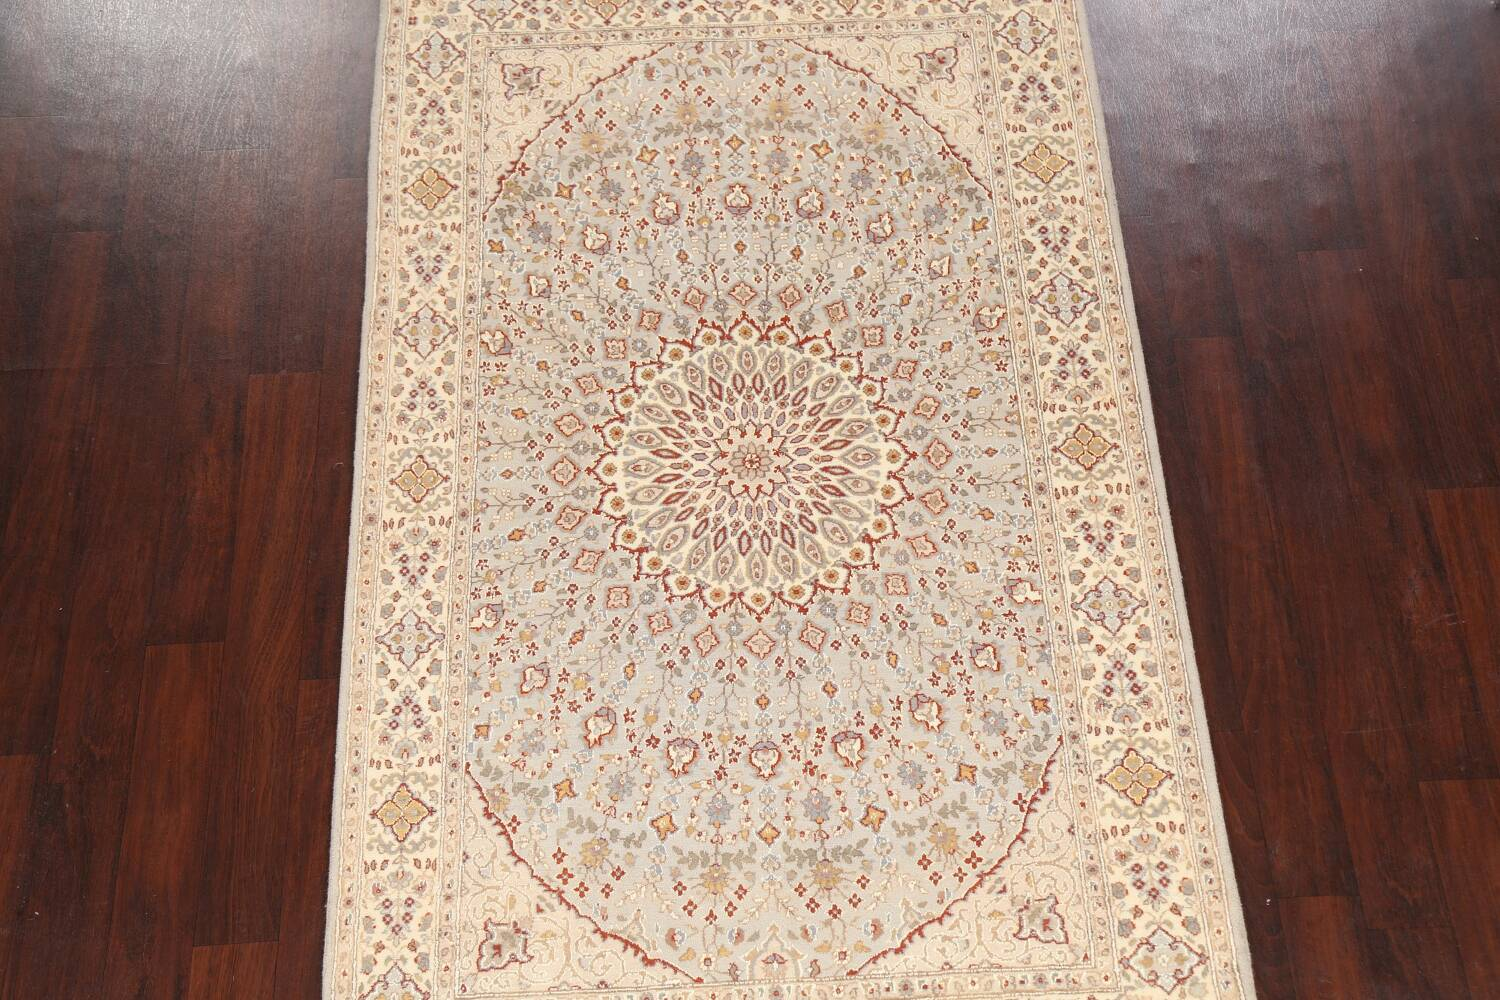 Vegetable Dye Geometric Tabriz Oriental Area Rug 5x7 image 3